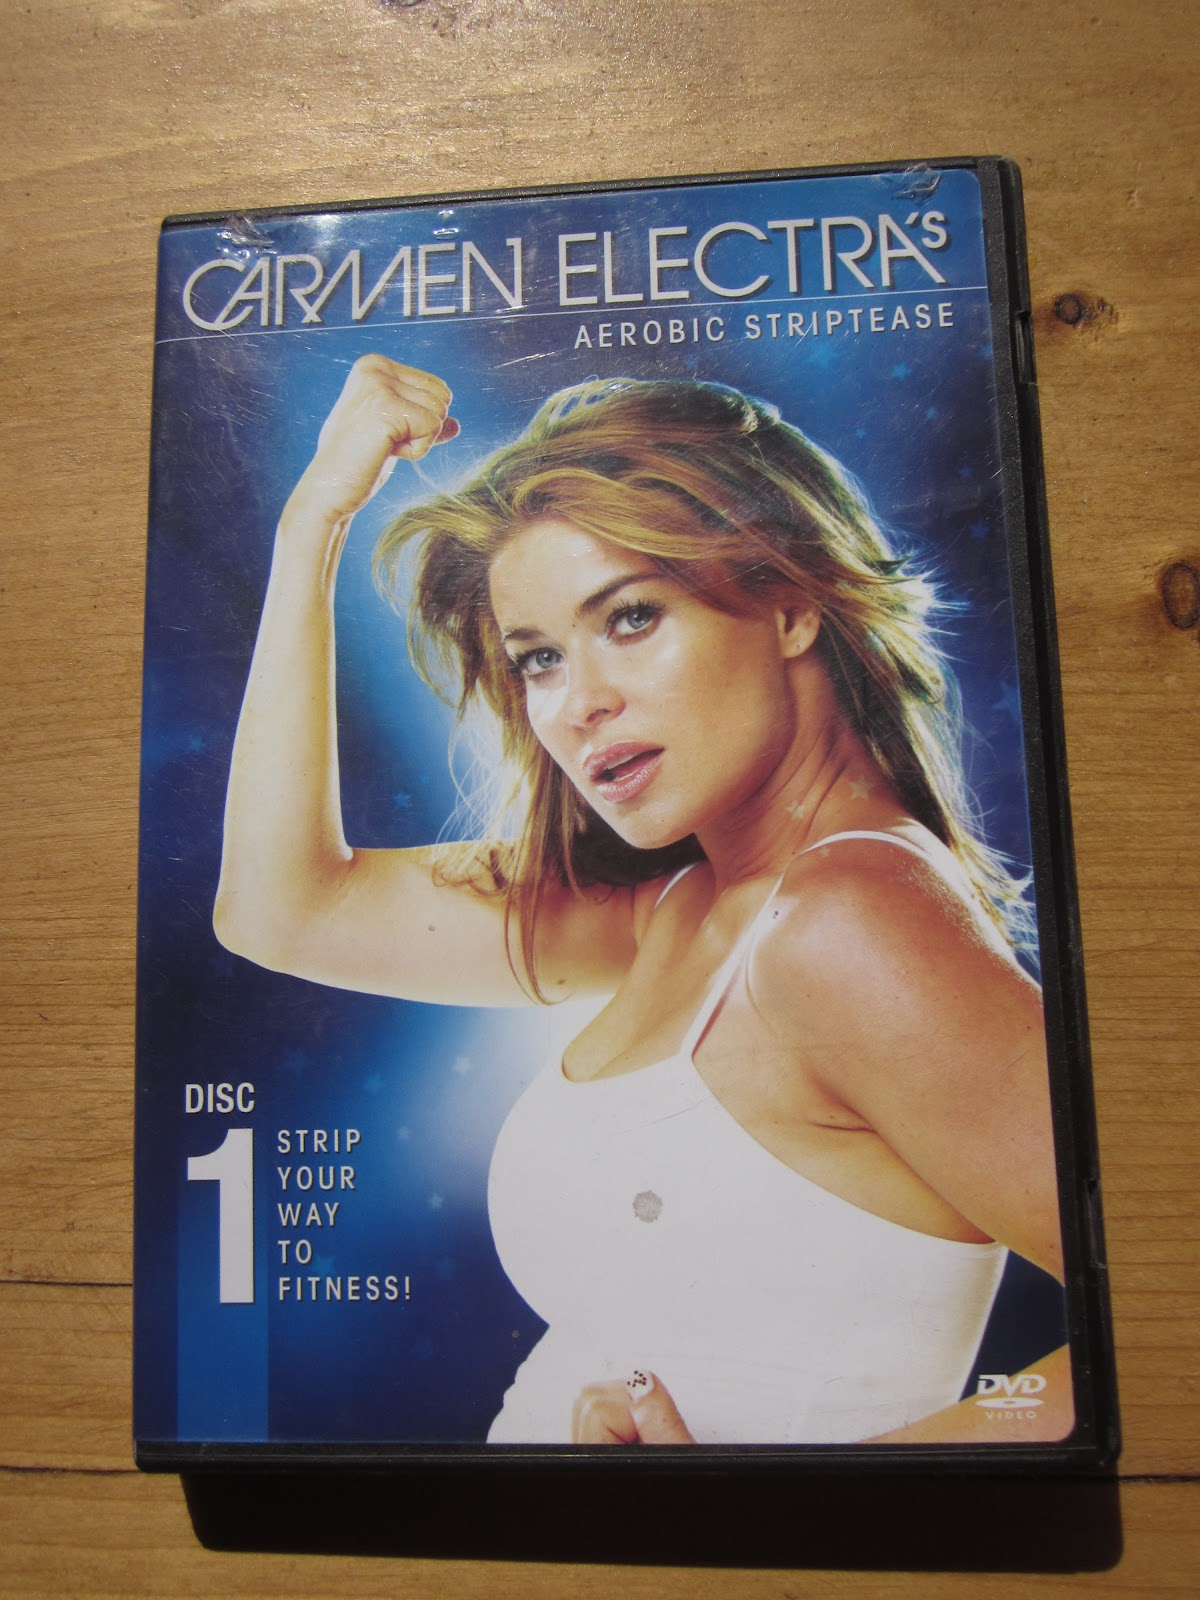 Stripping carmen electra